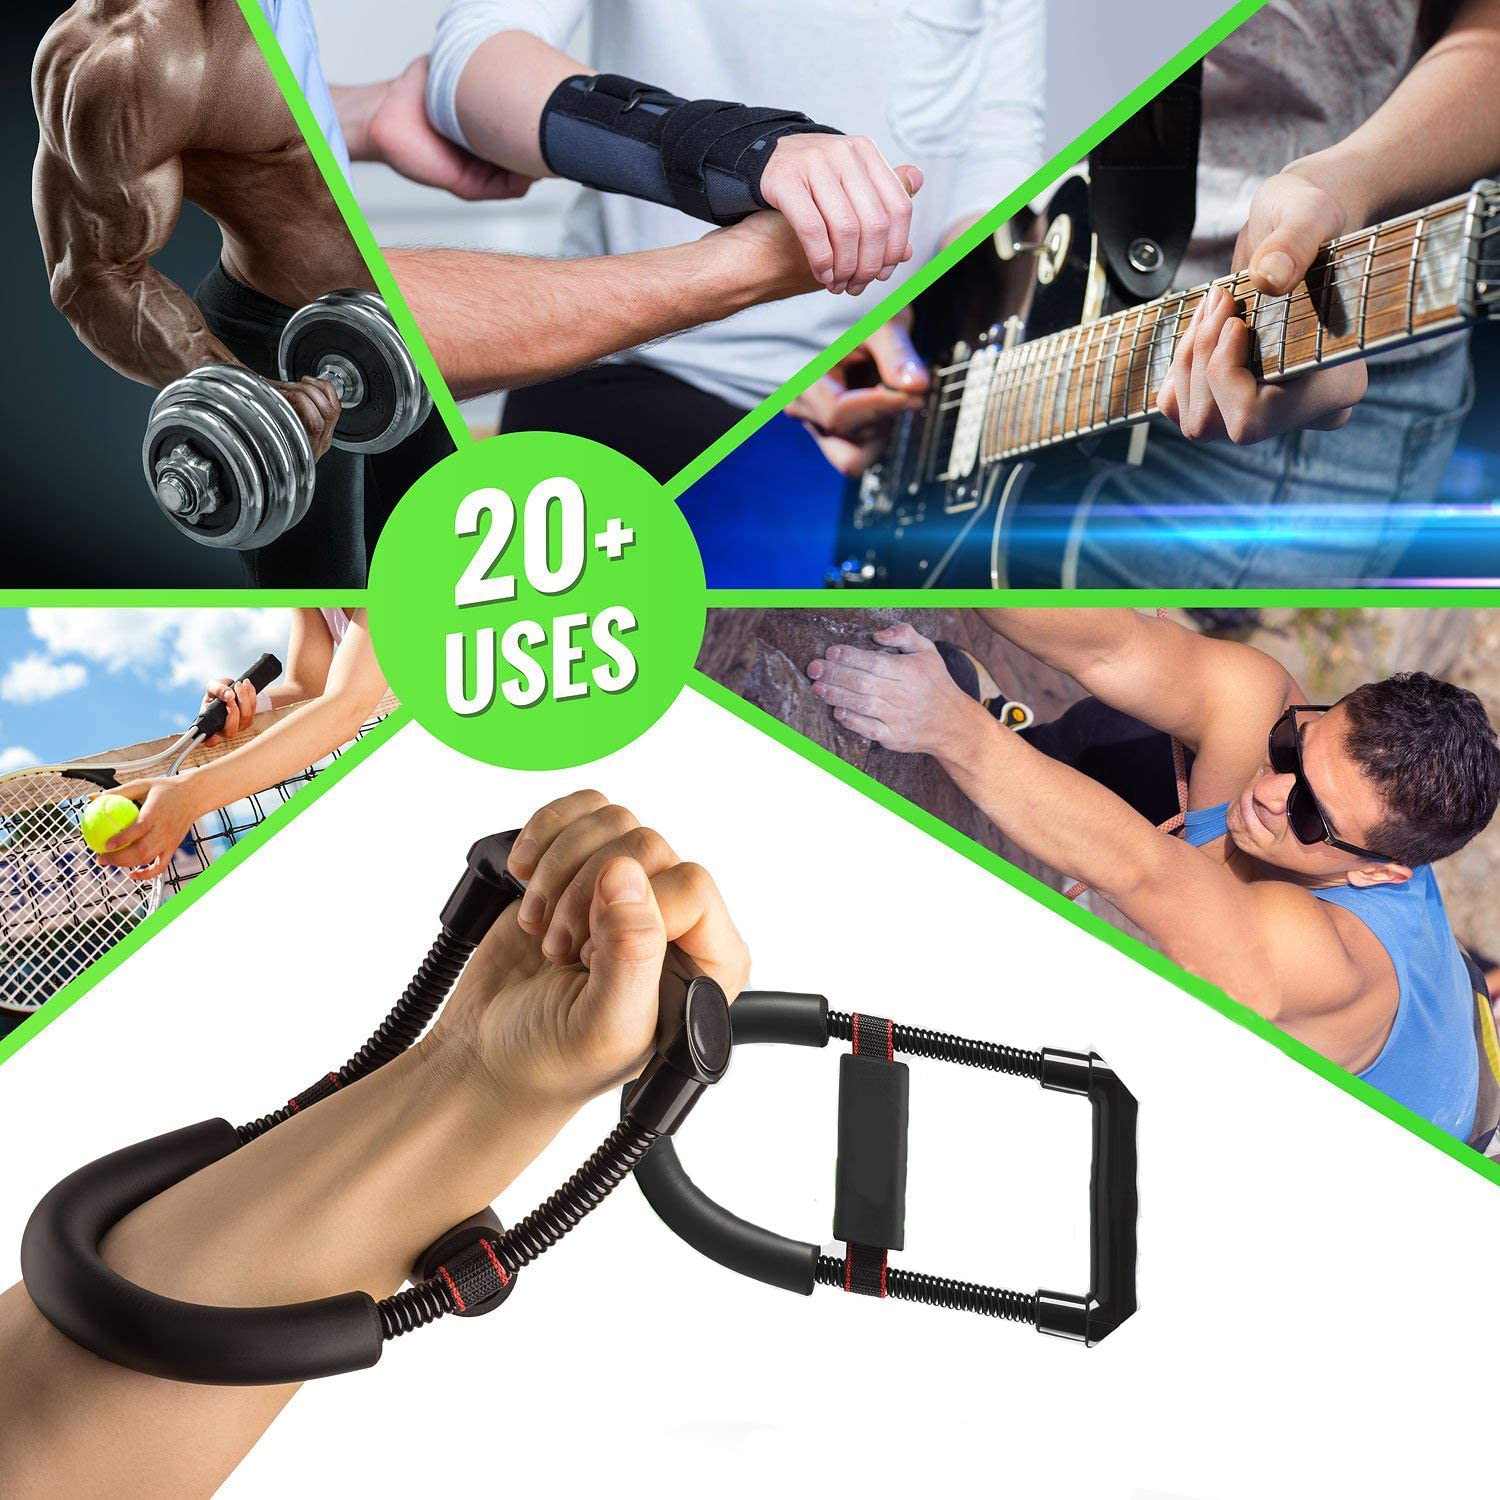 ALIXIN-Forearm Wrist Arm Flexor Exerciser Strength Strengthener Training Tools,Heavy Duty Carbon Steel Spring,Wide Design Non-Slip Cushion,Reduce Pain Speed Up Recovery For Athletes,Pianists Kids.